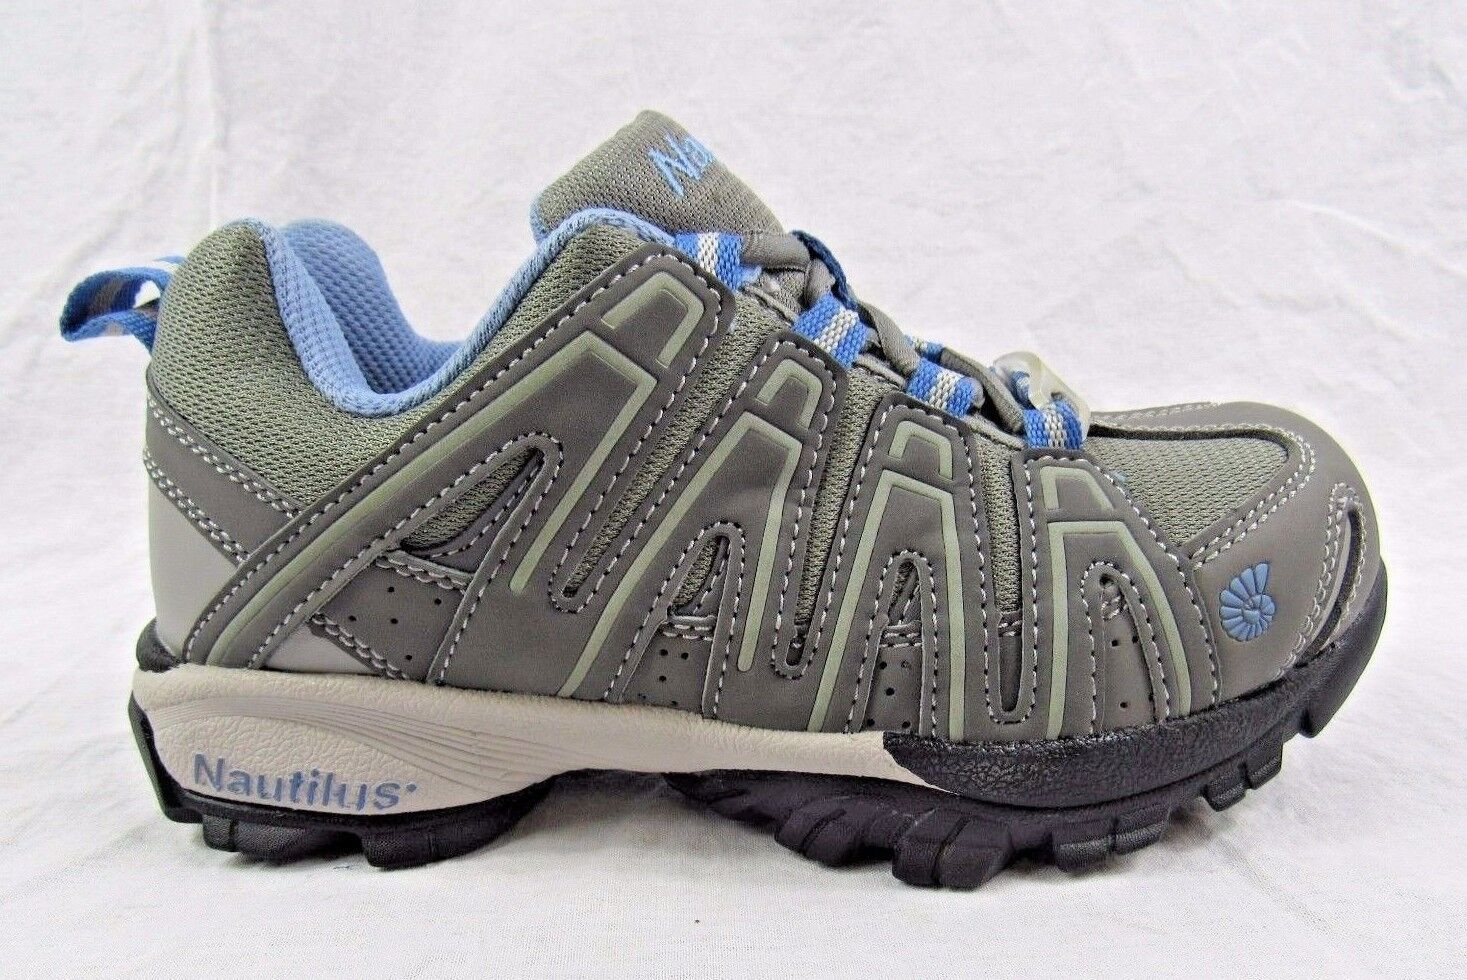 Nautilus Women's SD Athletic Soft Toe Work shoes - Size 8 - New Grey Sneakers